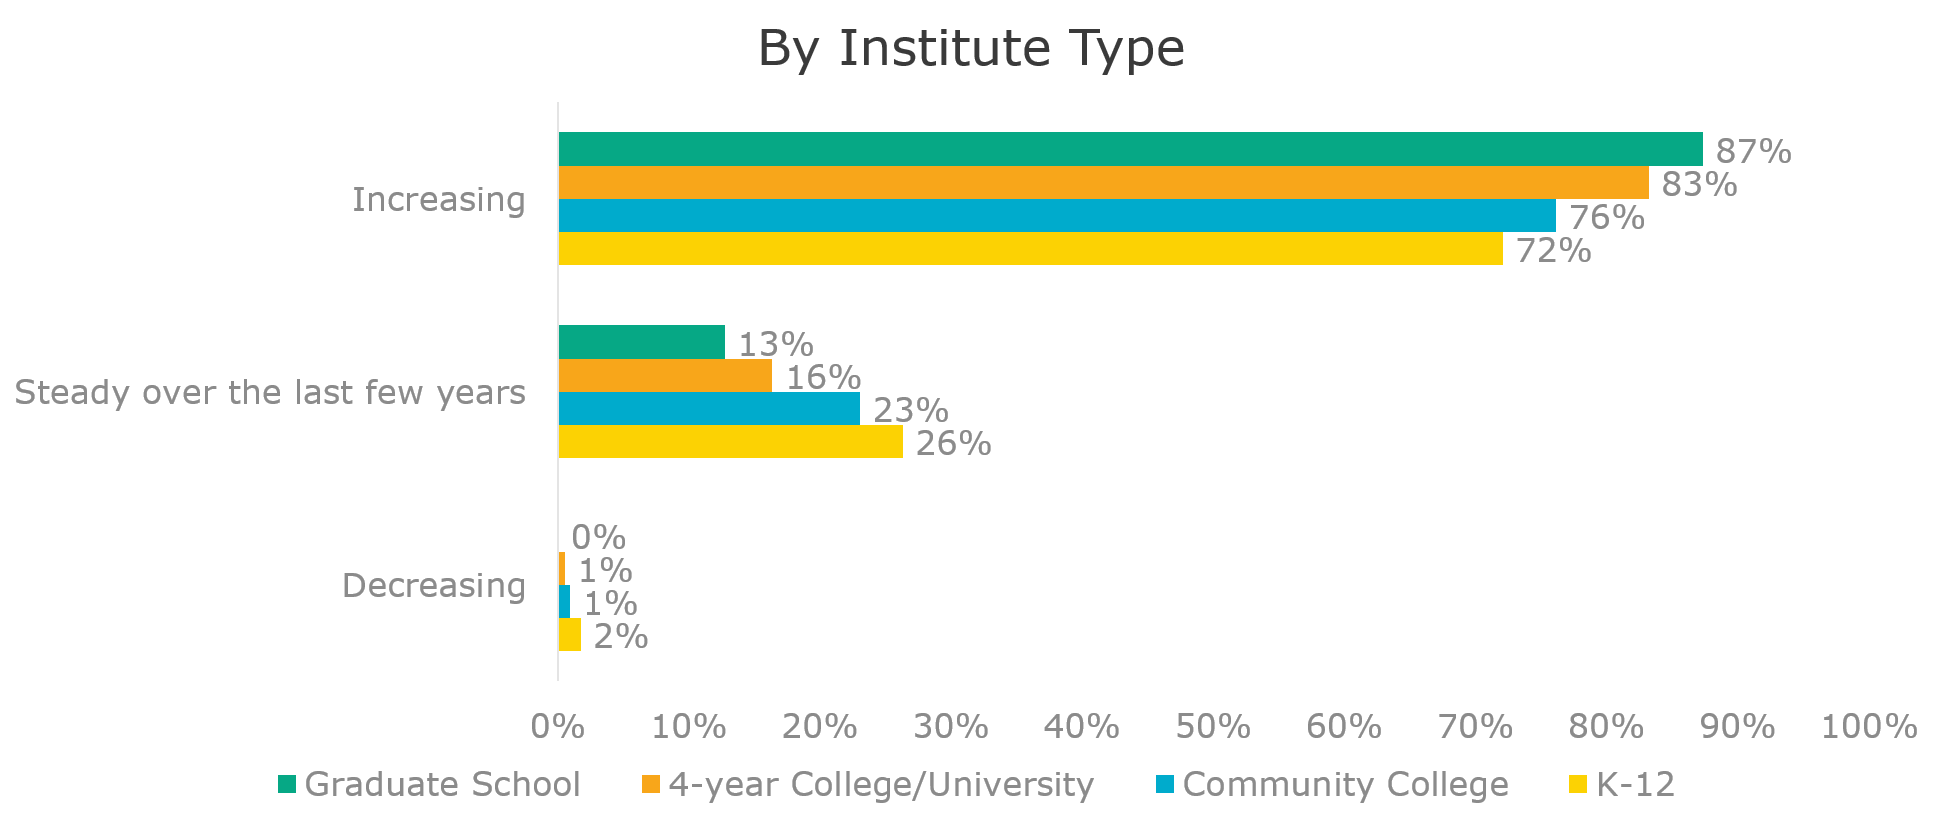 trend in student expectations by institution type